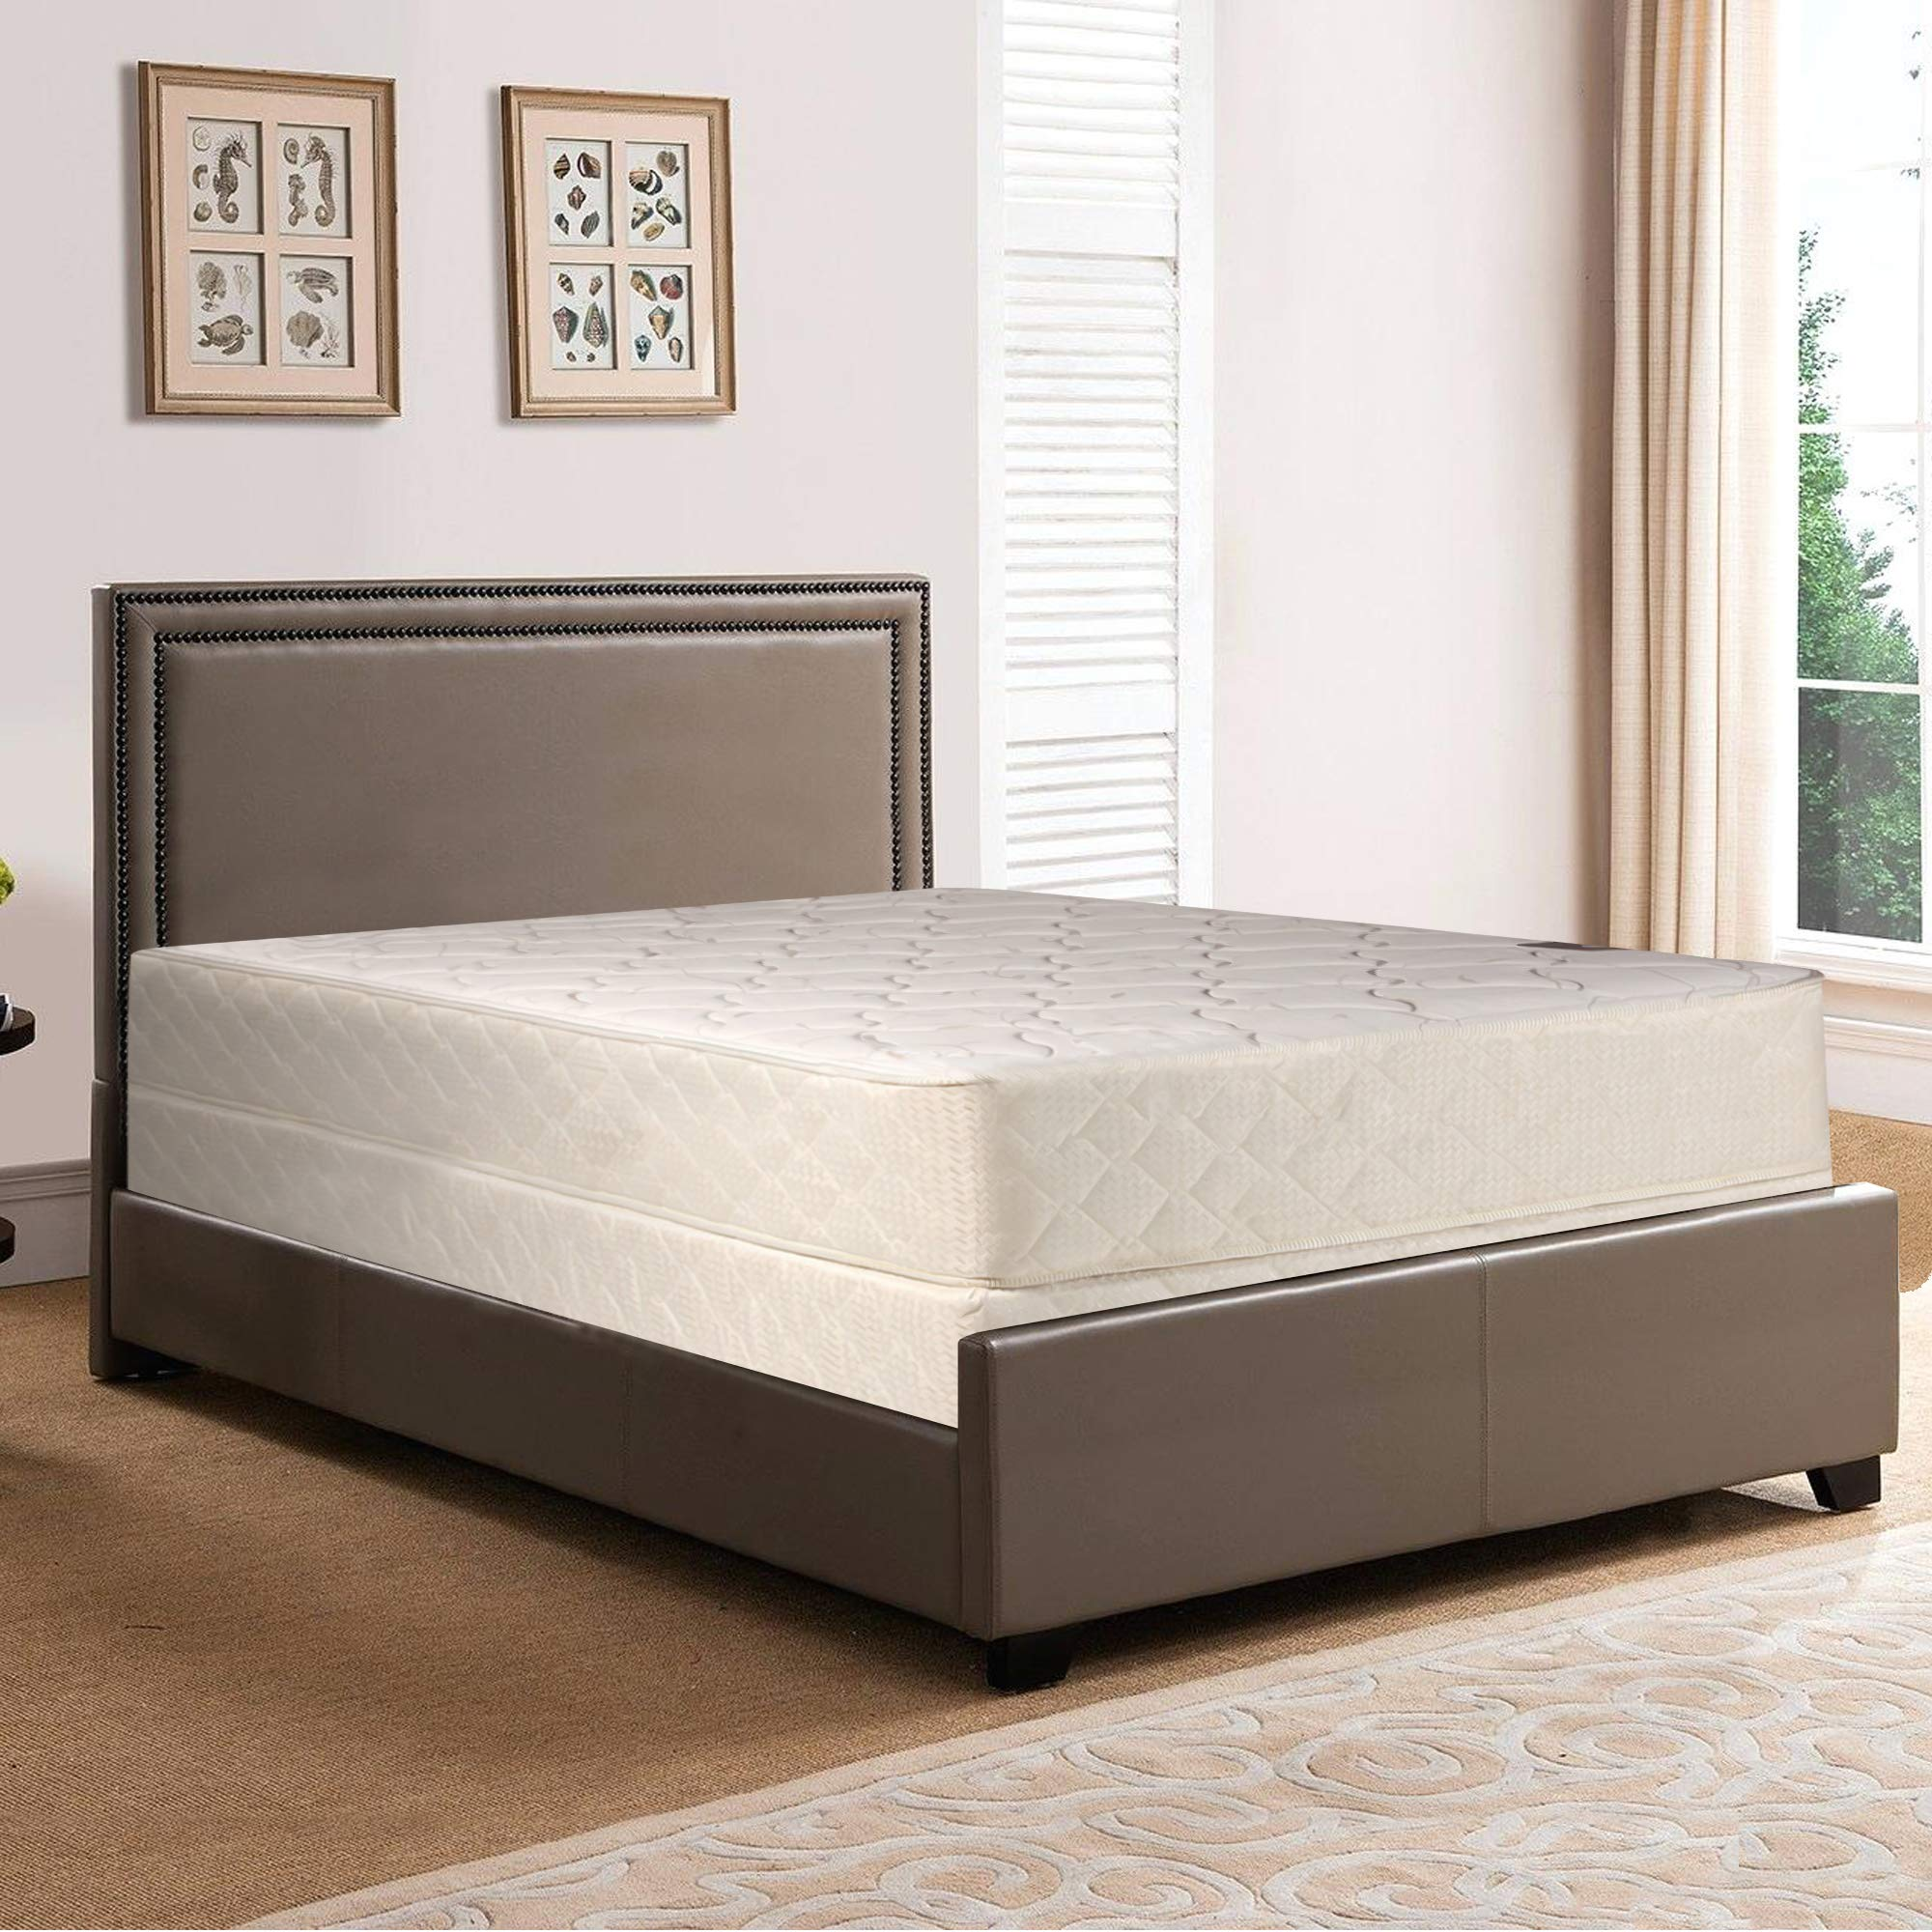 Spring Solution 10-inch Medium Mattress, Full Size,